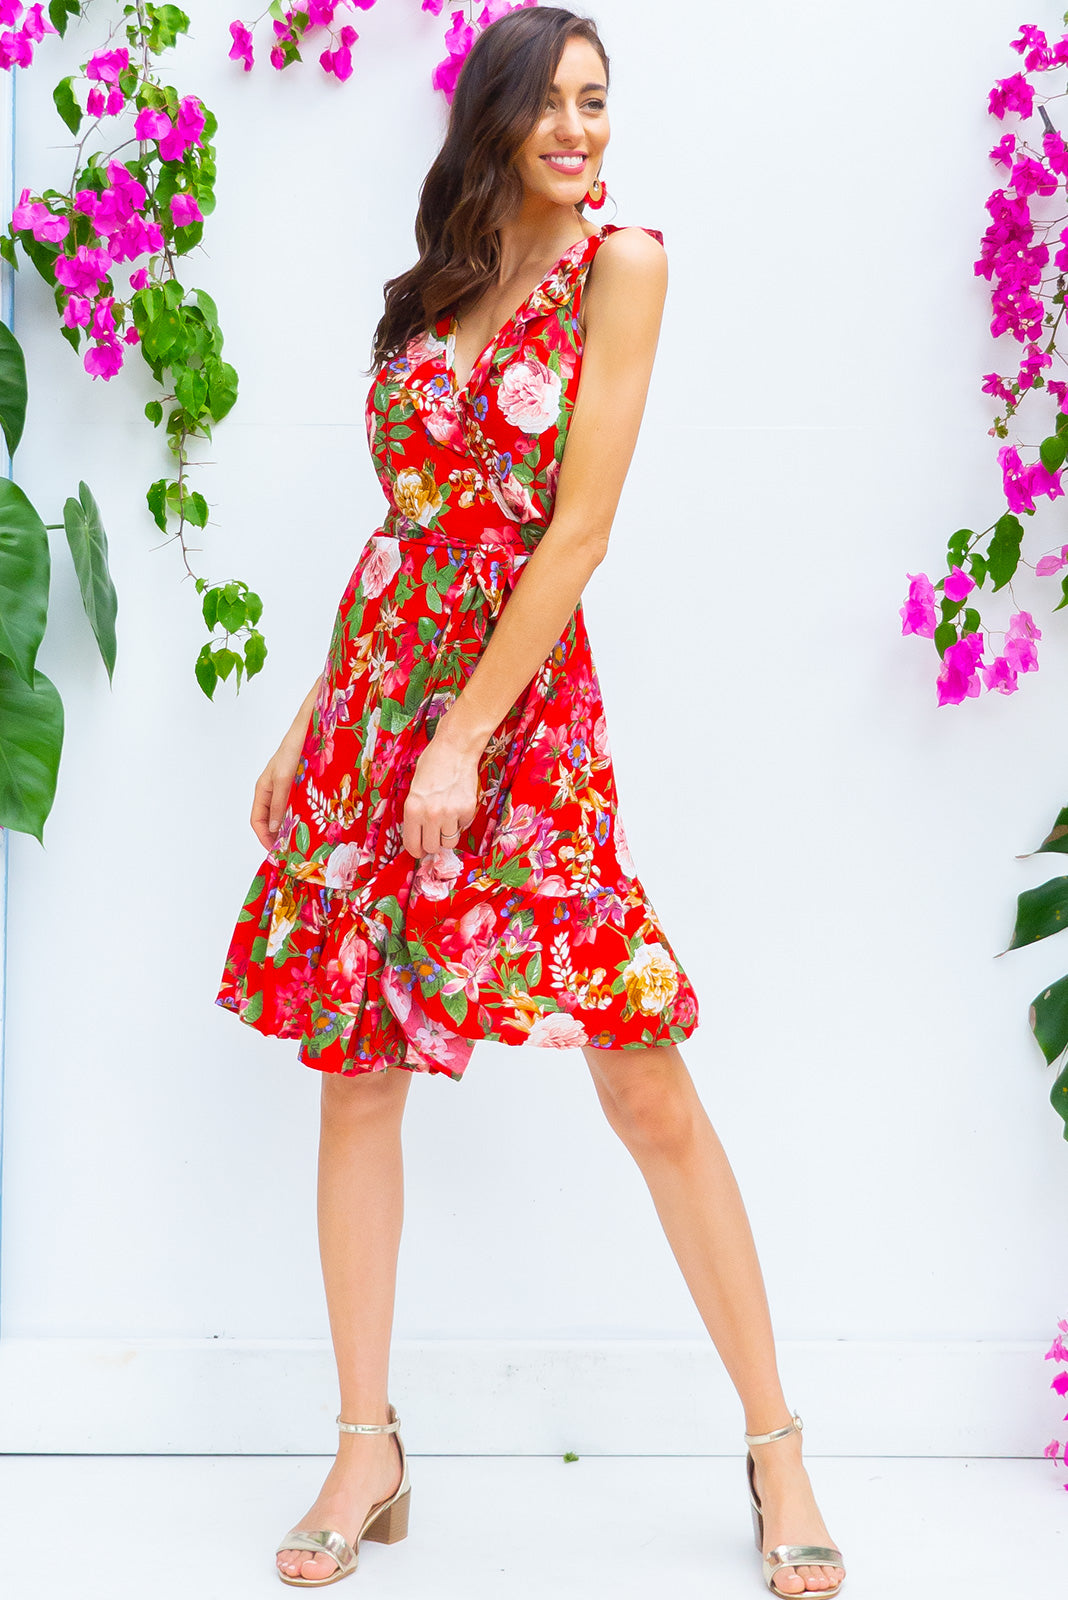 Paloma Red Roses Wrap Dress features a flattering wrap around shape, sleeveless bodice with a frill and comes in bright red floral print